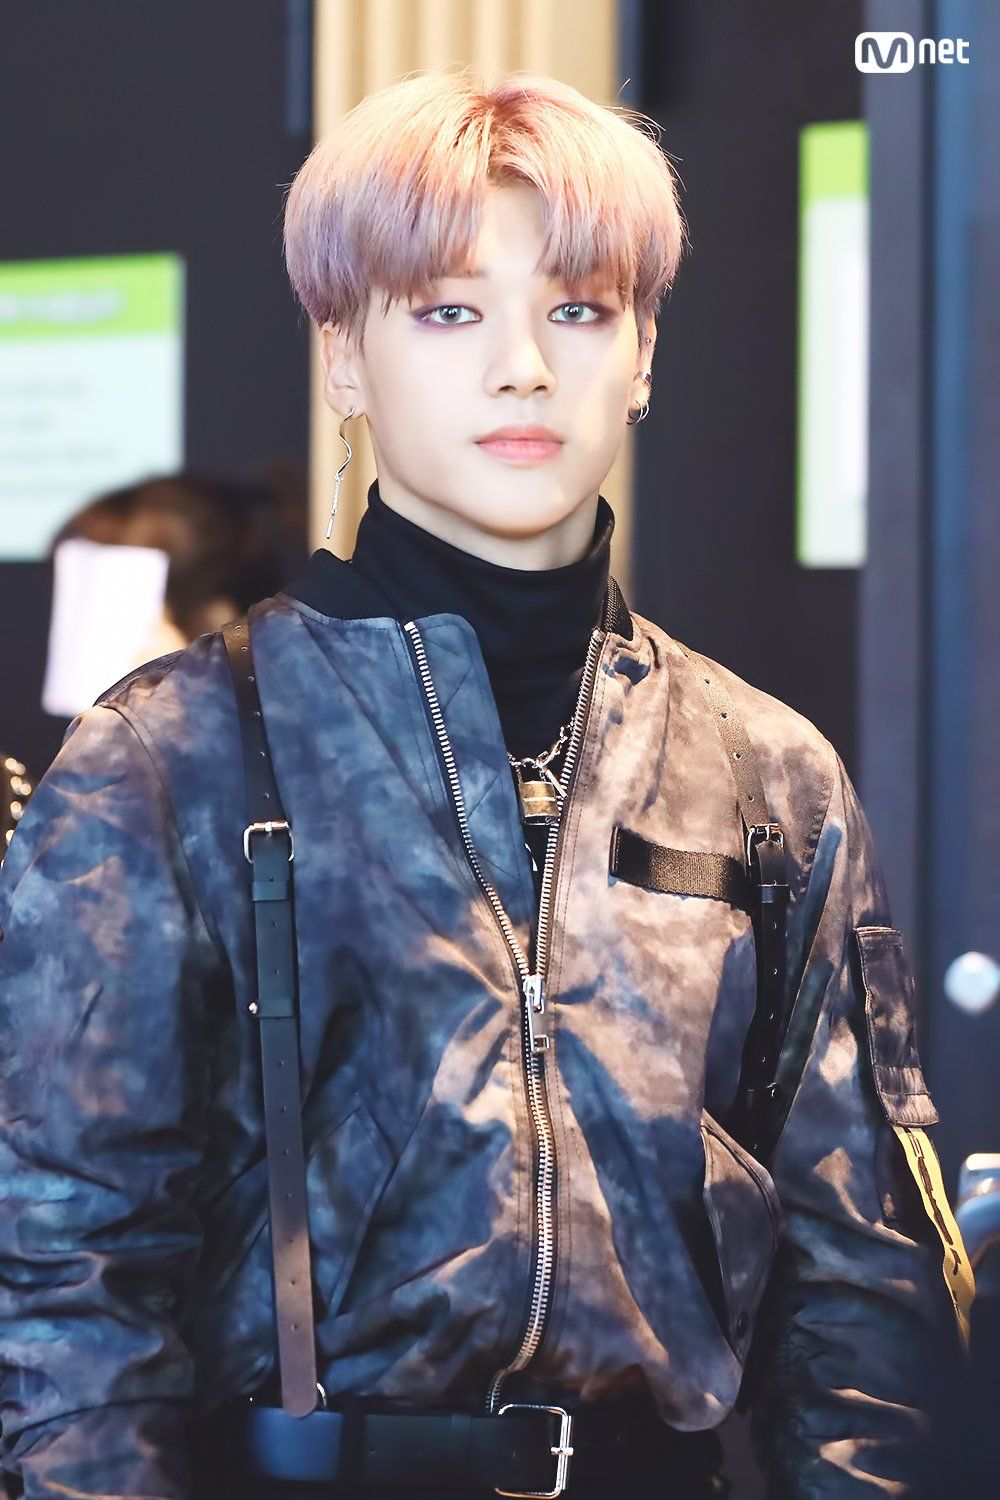 Pin By Nikki Downing On Ateez Woo Young Jung Woo Young Kpop